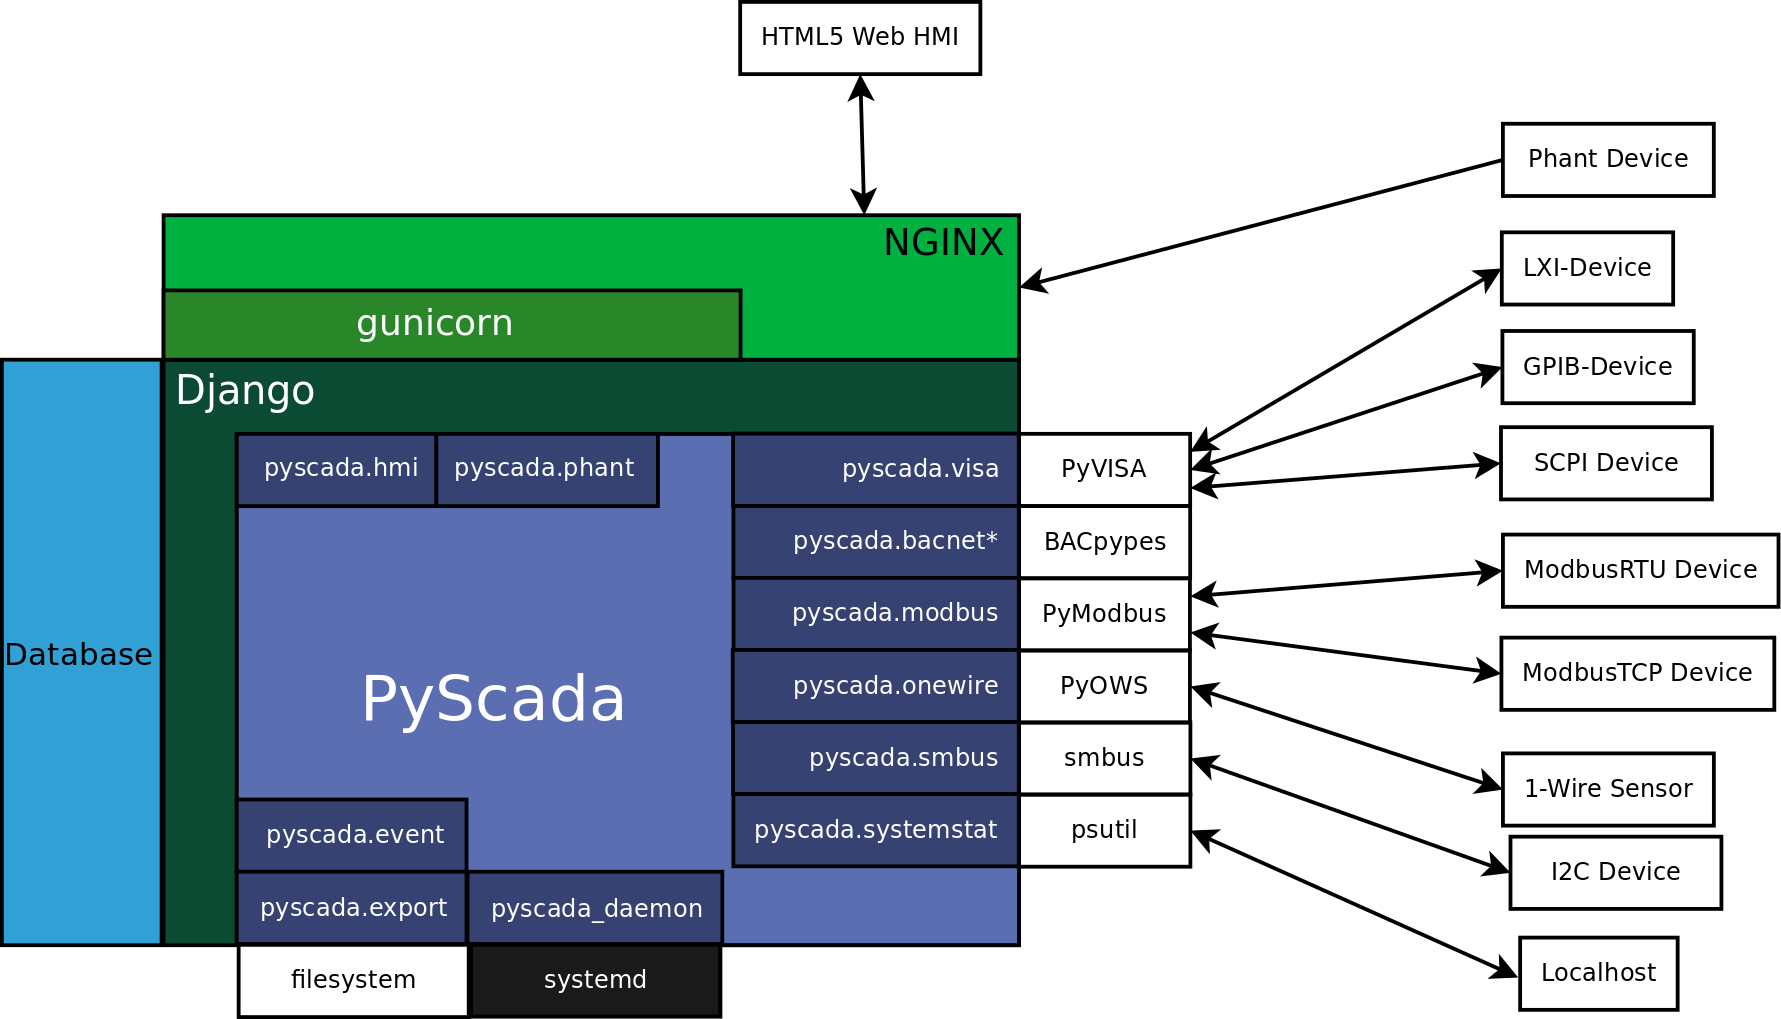 https://github.com/trombastic/PyScada/raw/dev/0.7.x/docs/pic/PyScada_module_overview.png